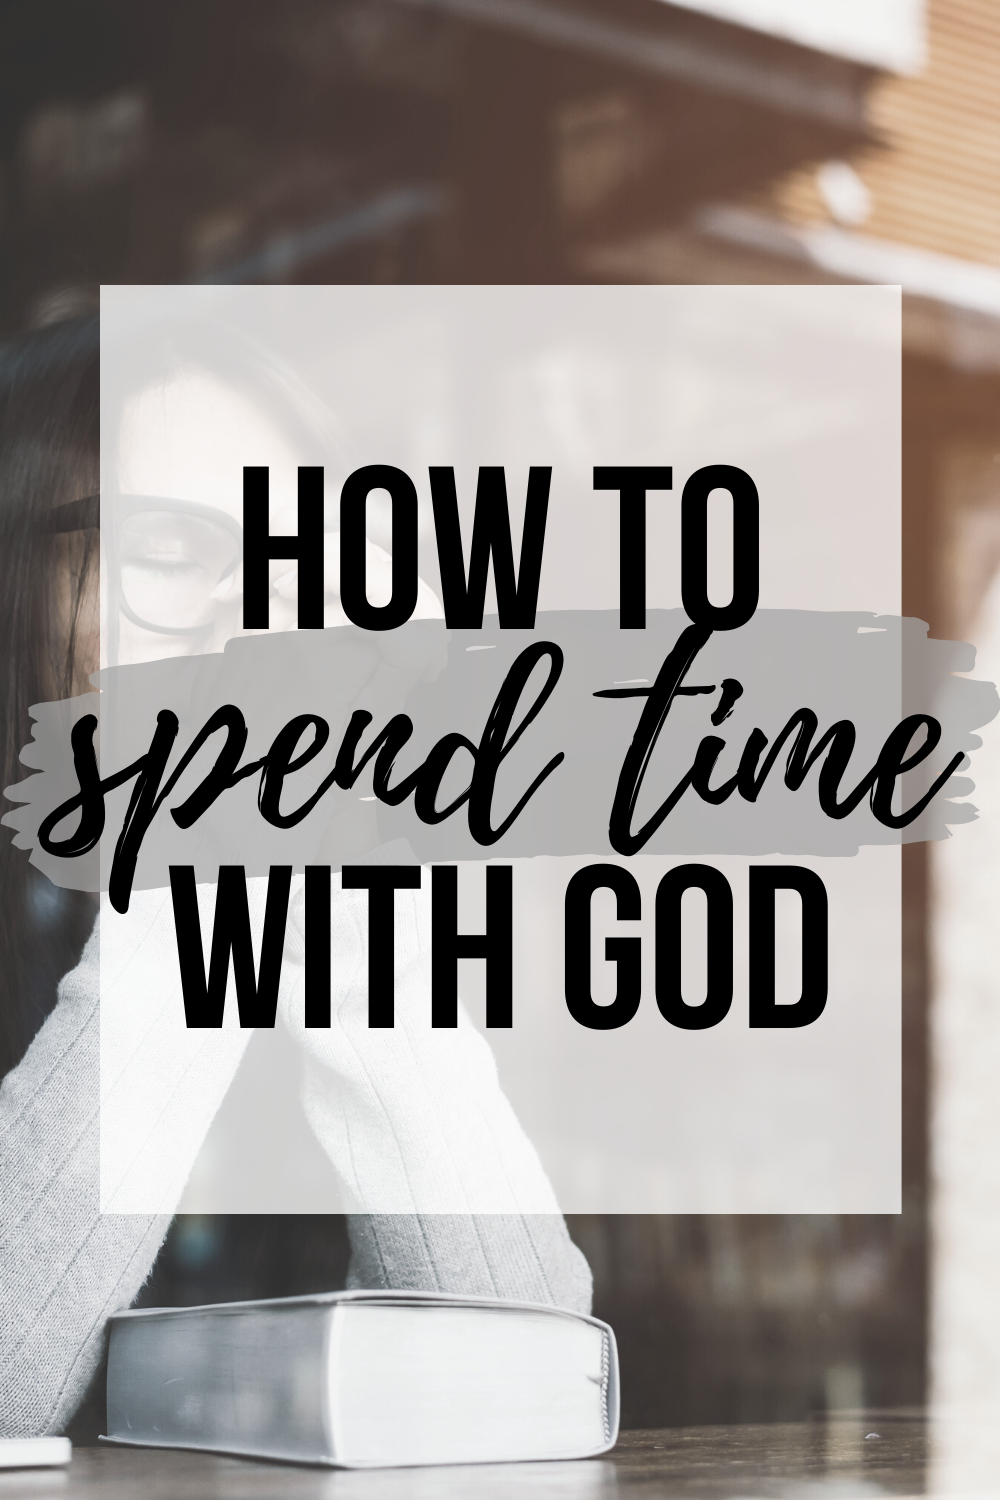 spending time with god how to spend time with god god time quiet time with god prayer bible how to pray devotional prayer secret place intimacy with Jesus as a christian